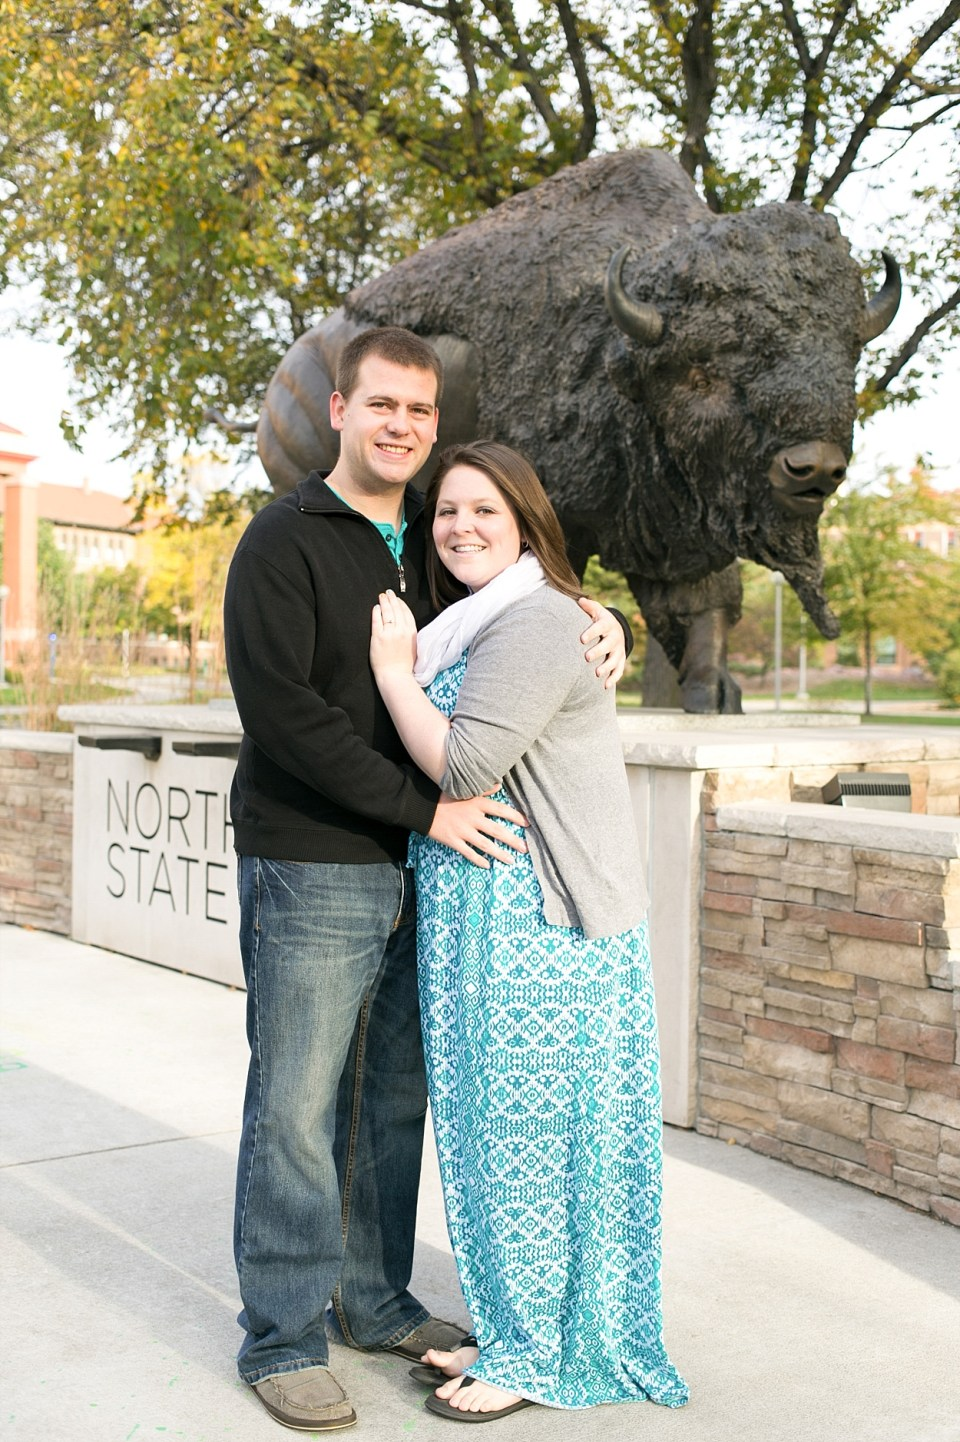 NDSU Engagement session in front of the NDSU Bison Bull